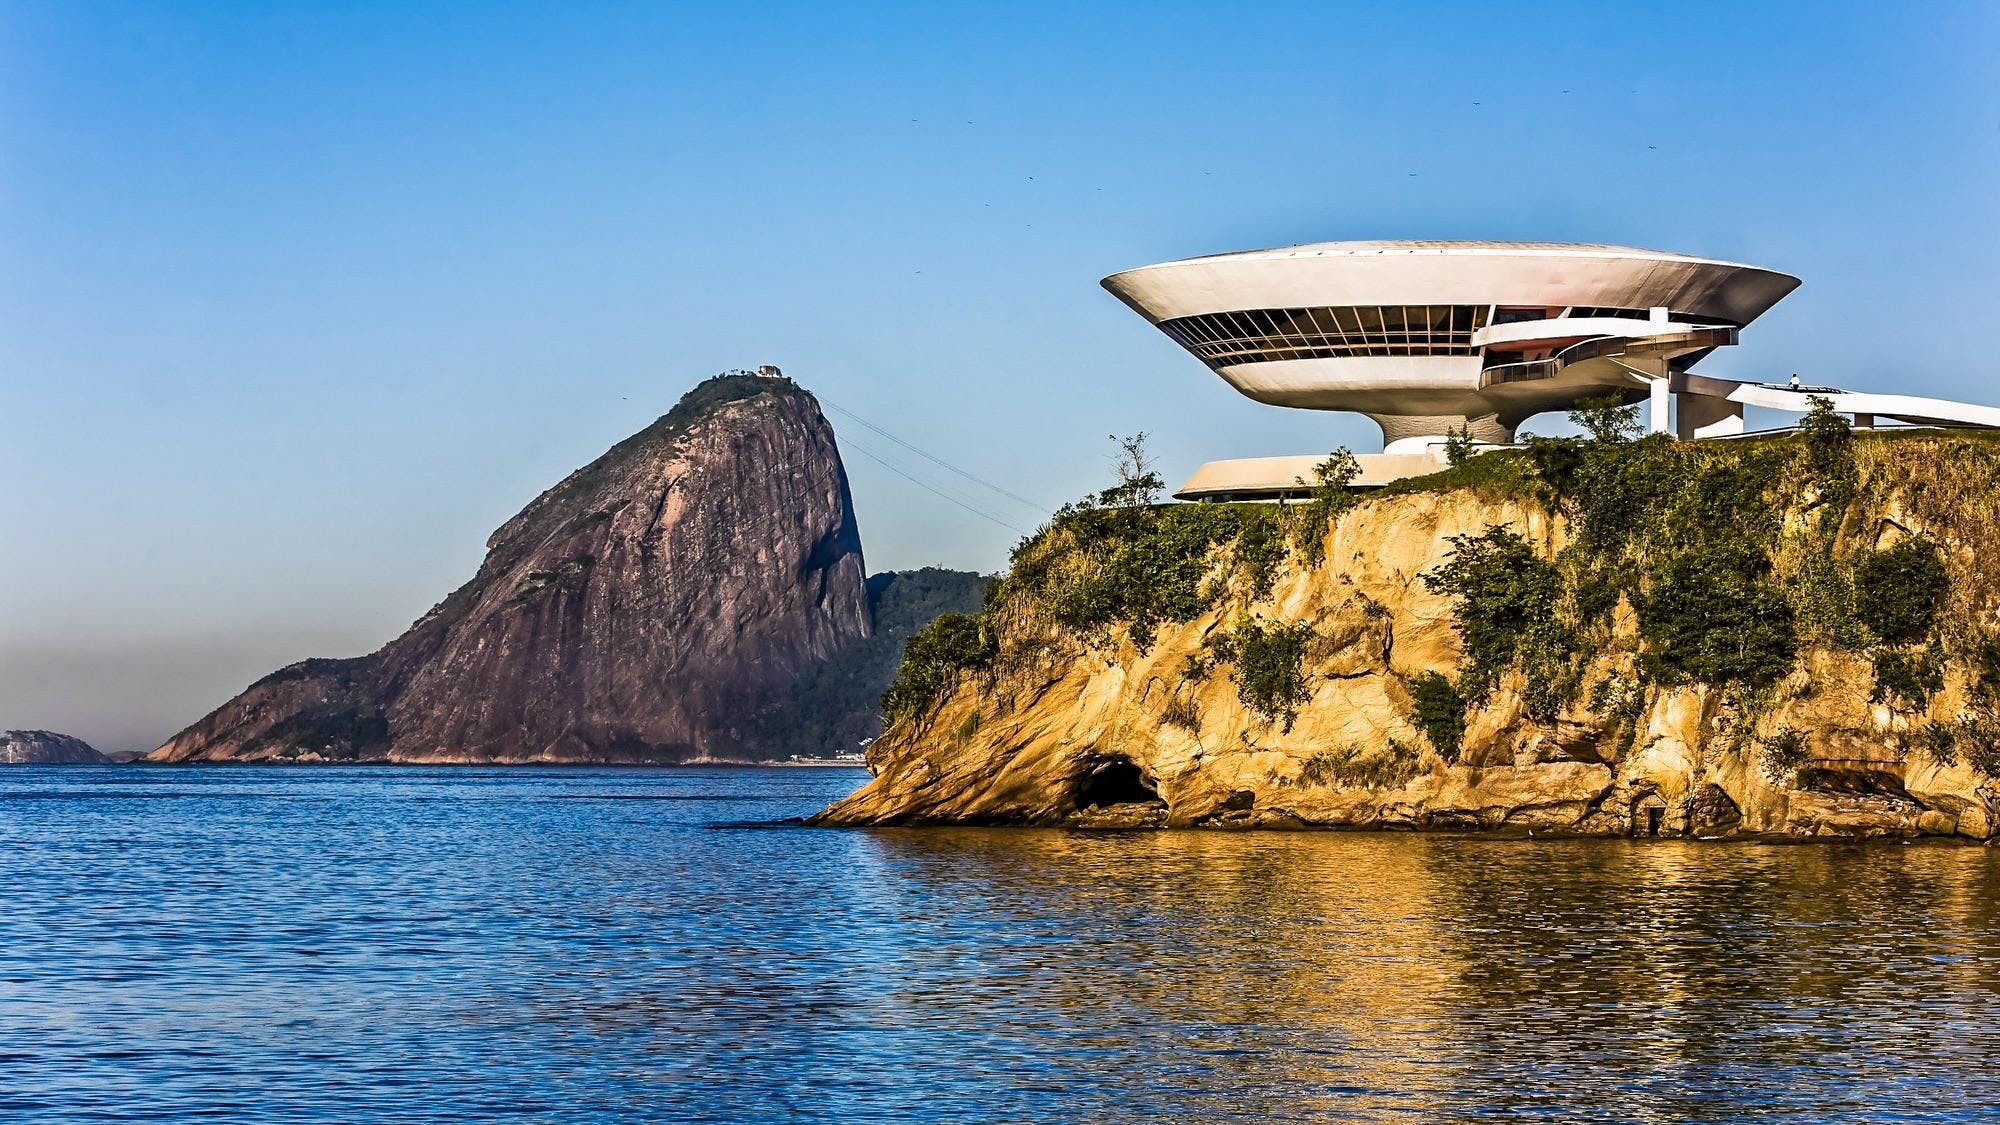 The UFO Architecture for the Museum of Contemporary Art by Oscar Niemeyer